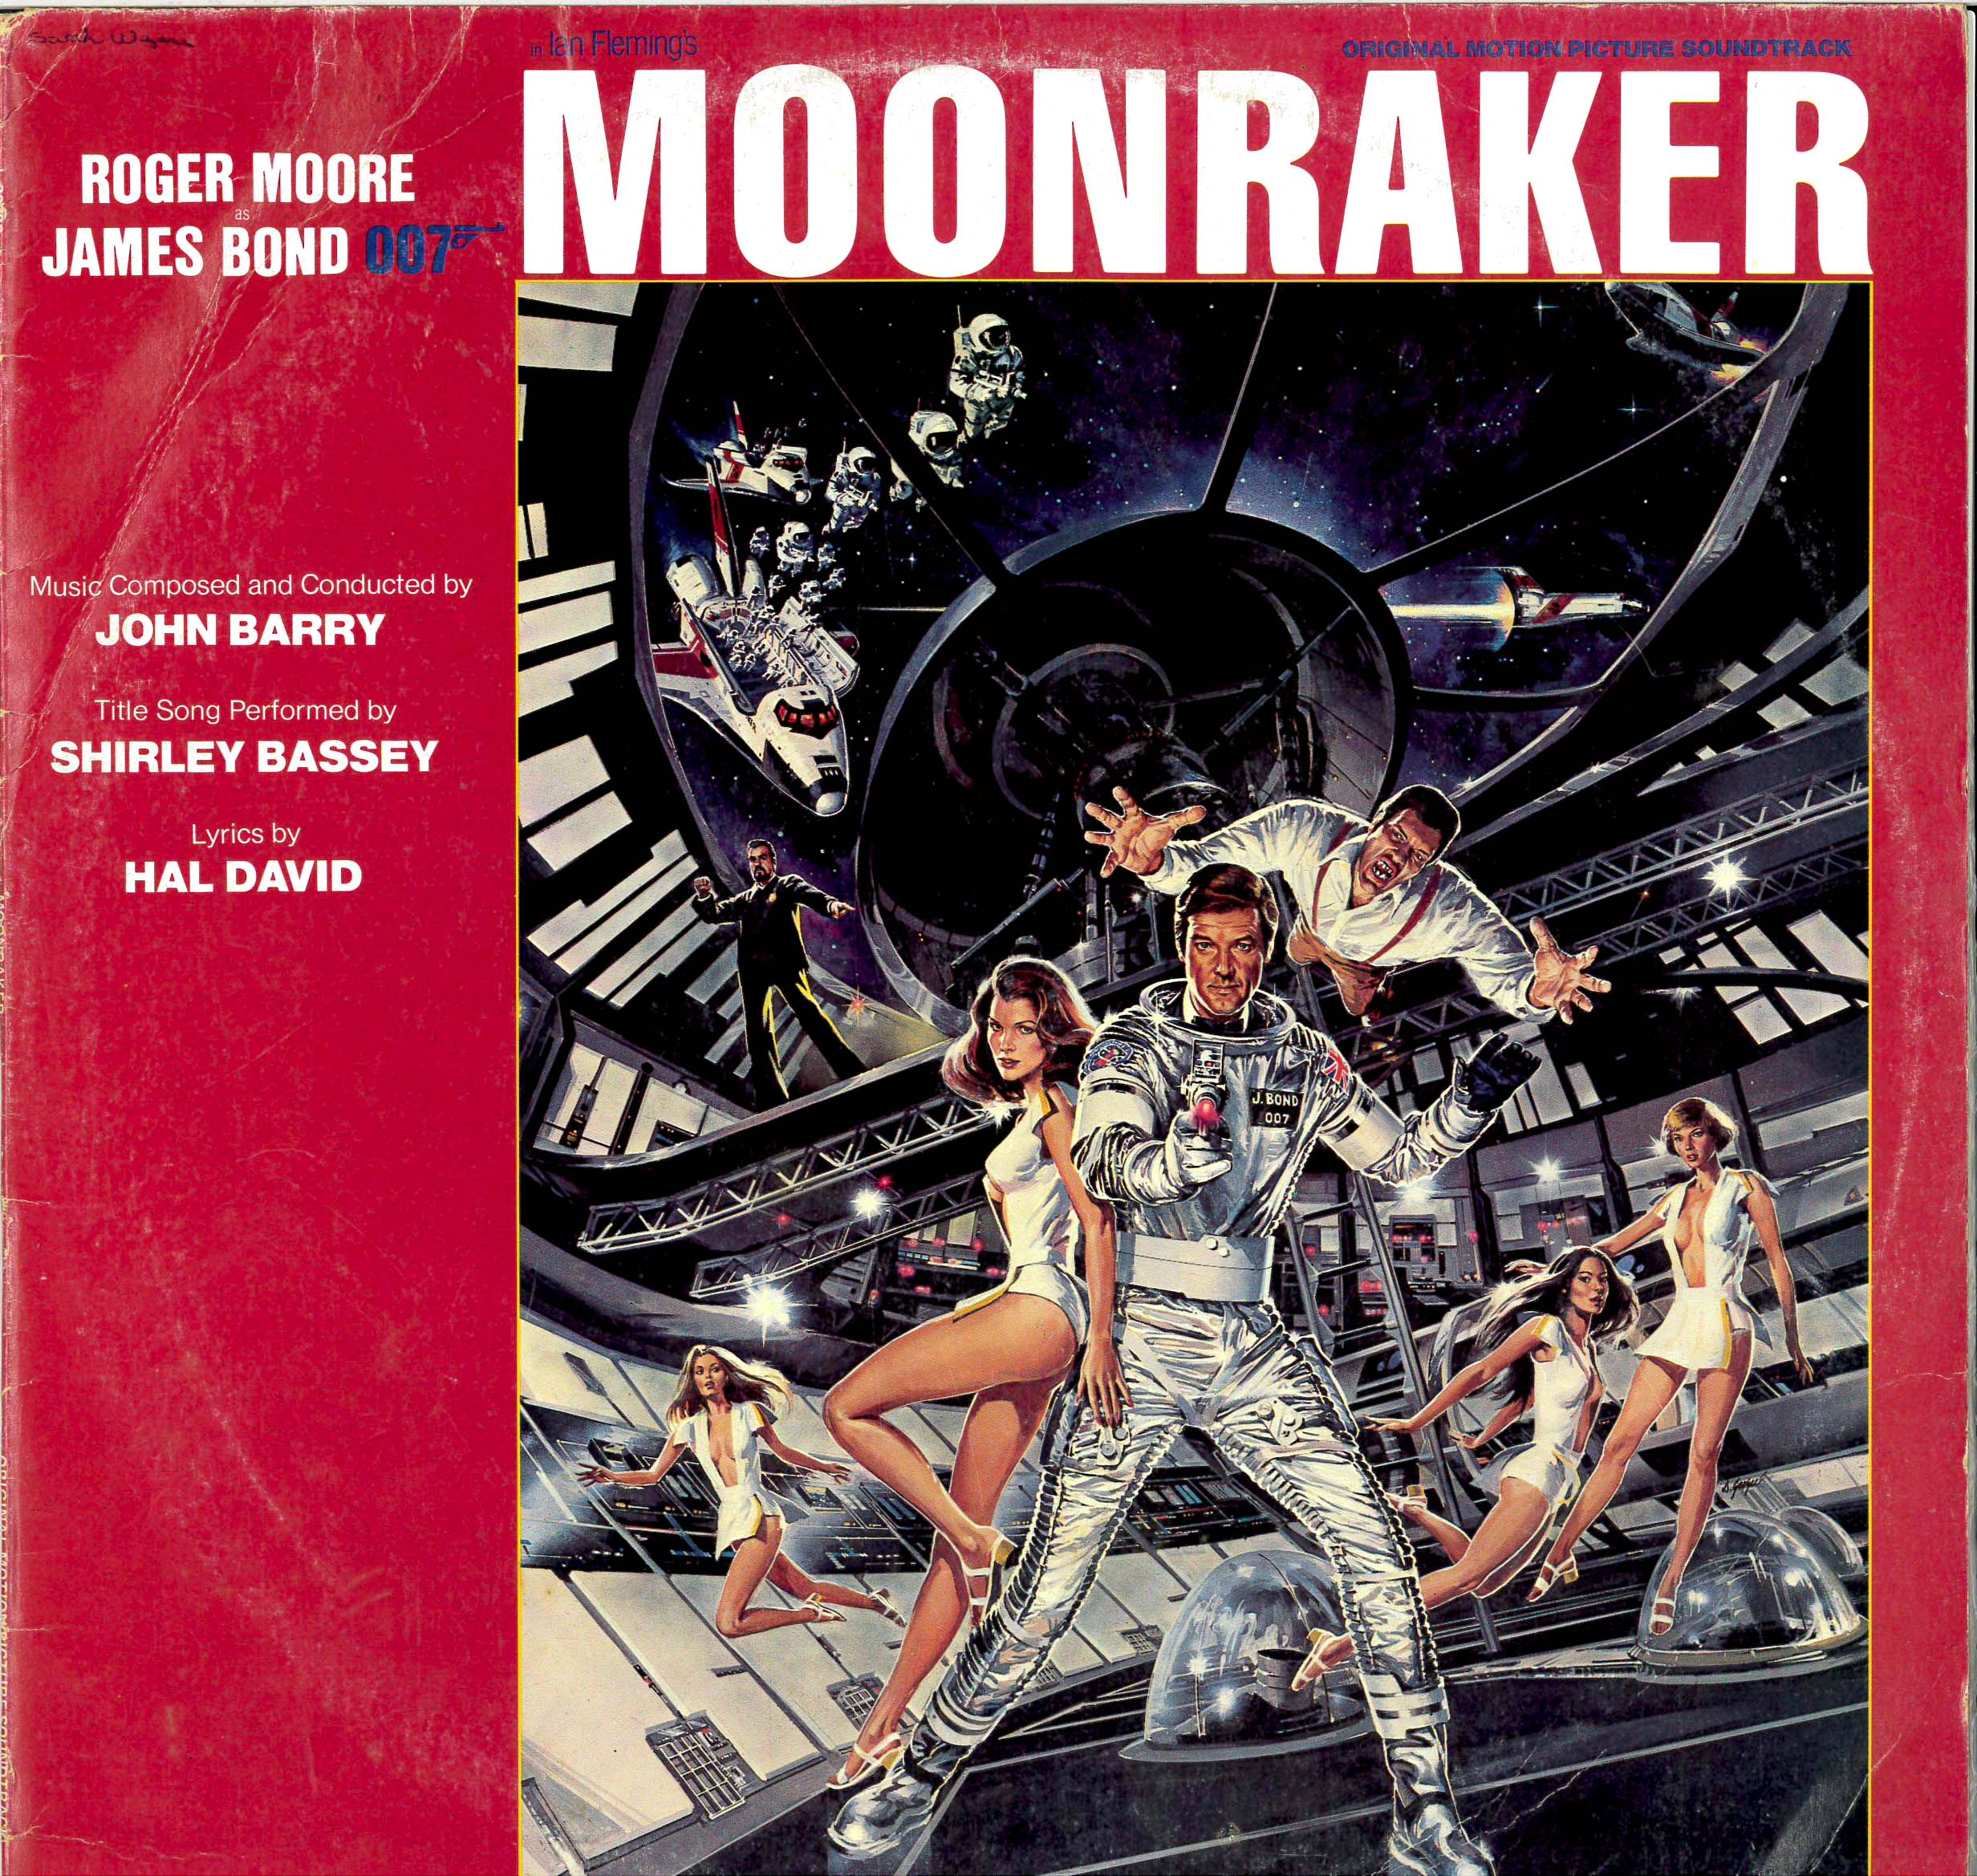 moonraker red vinyl1 20 Eyebrow-Raising Facts You Never Knew About Moonraker